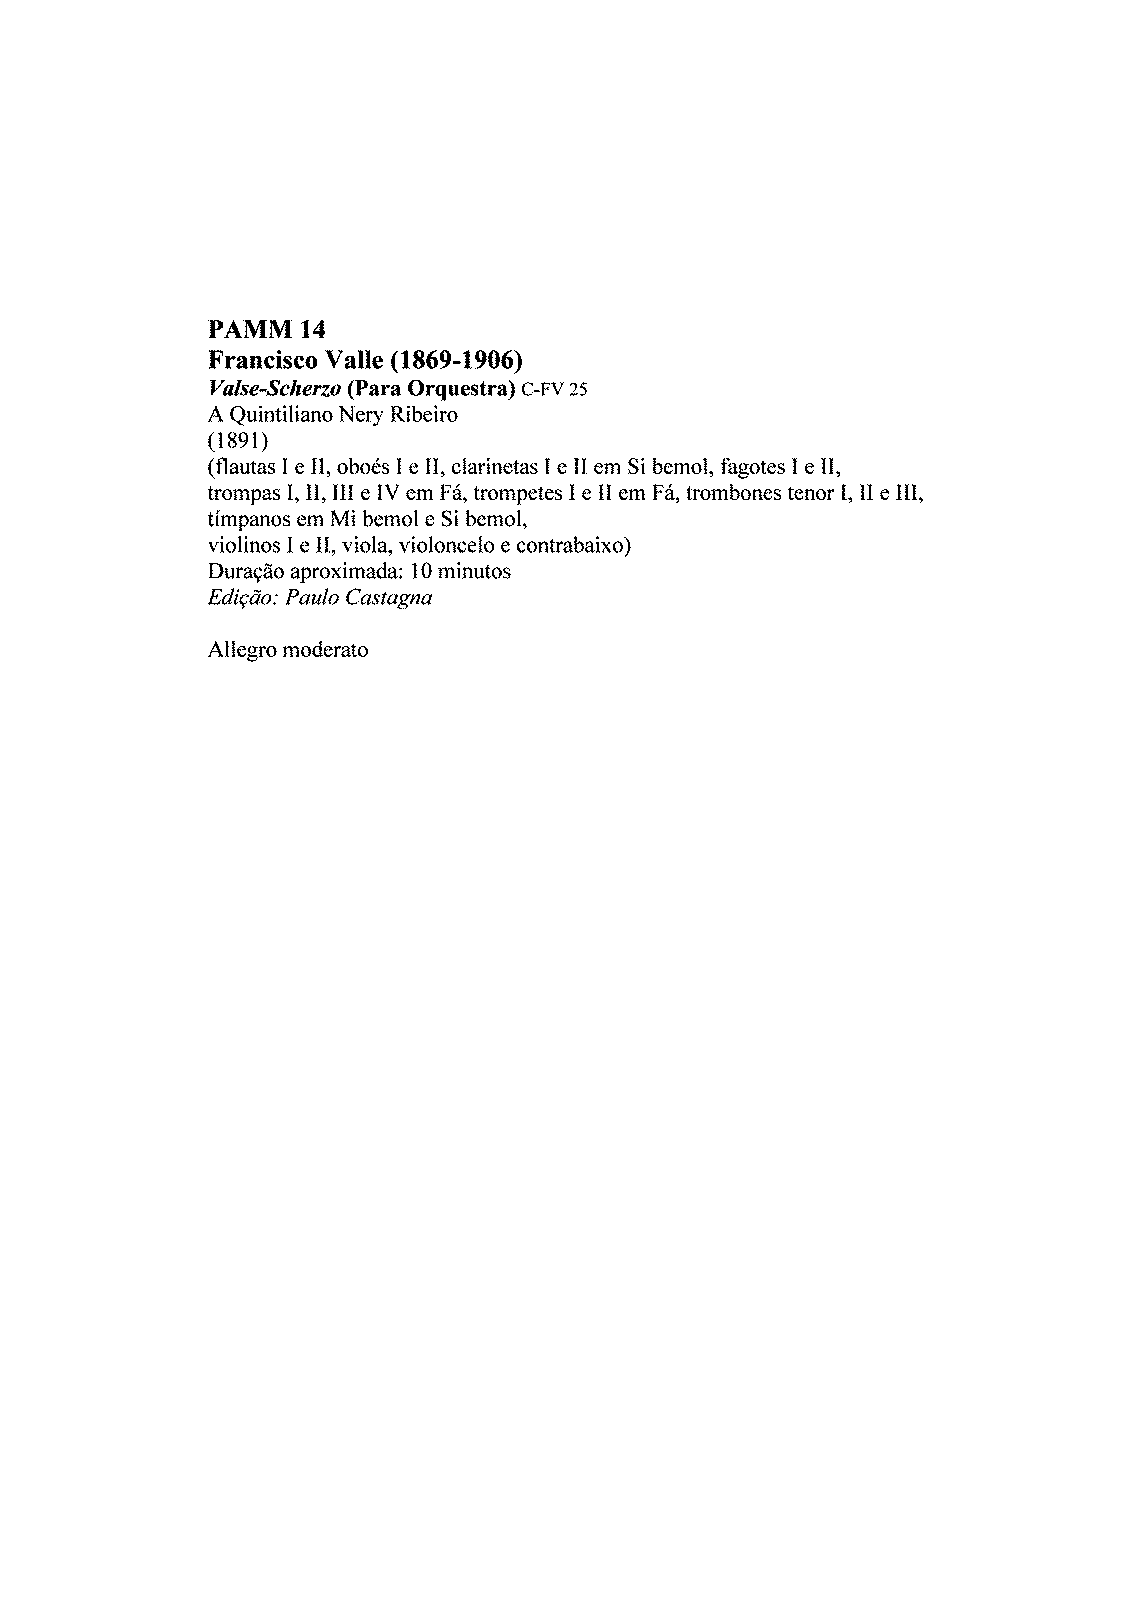 PMLP376455-Vol3-PAMM14-Valse-00-GradeOrquestral--A3-.pdf